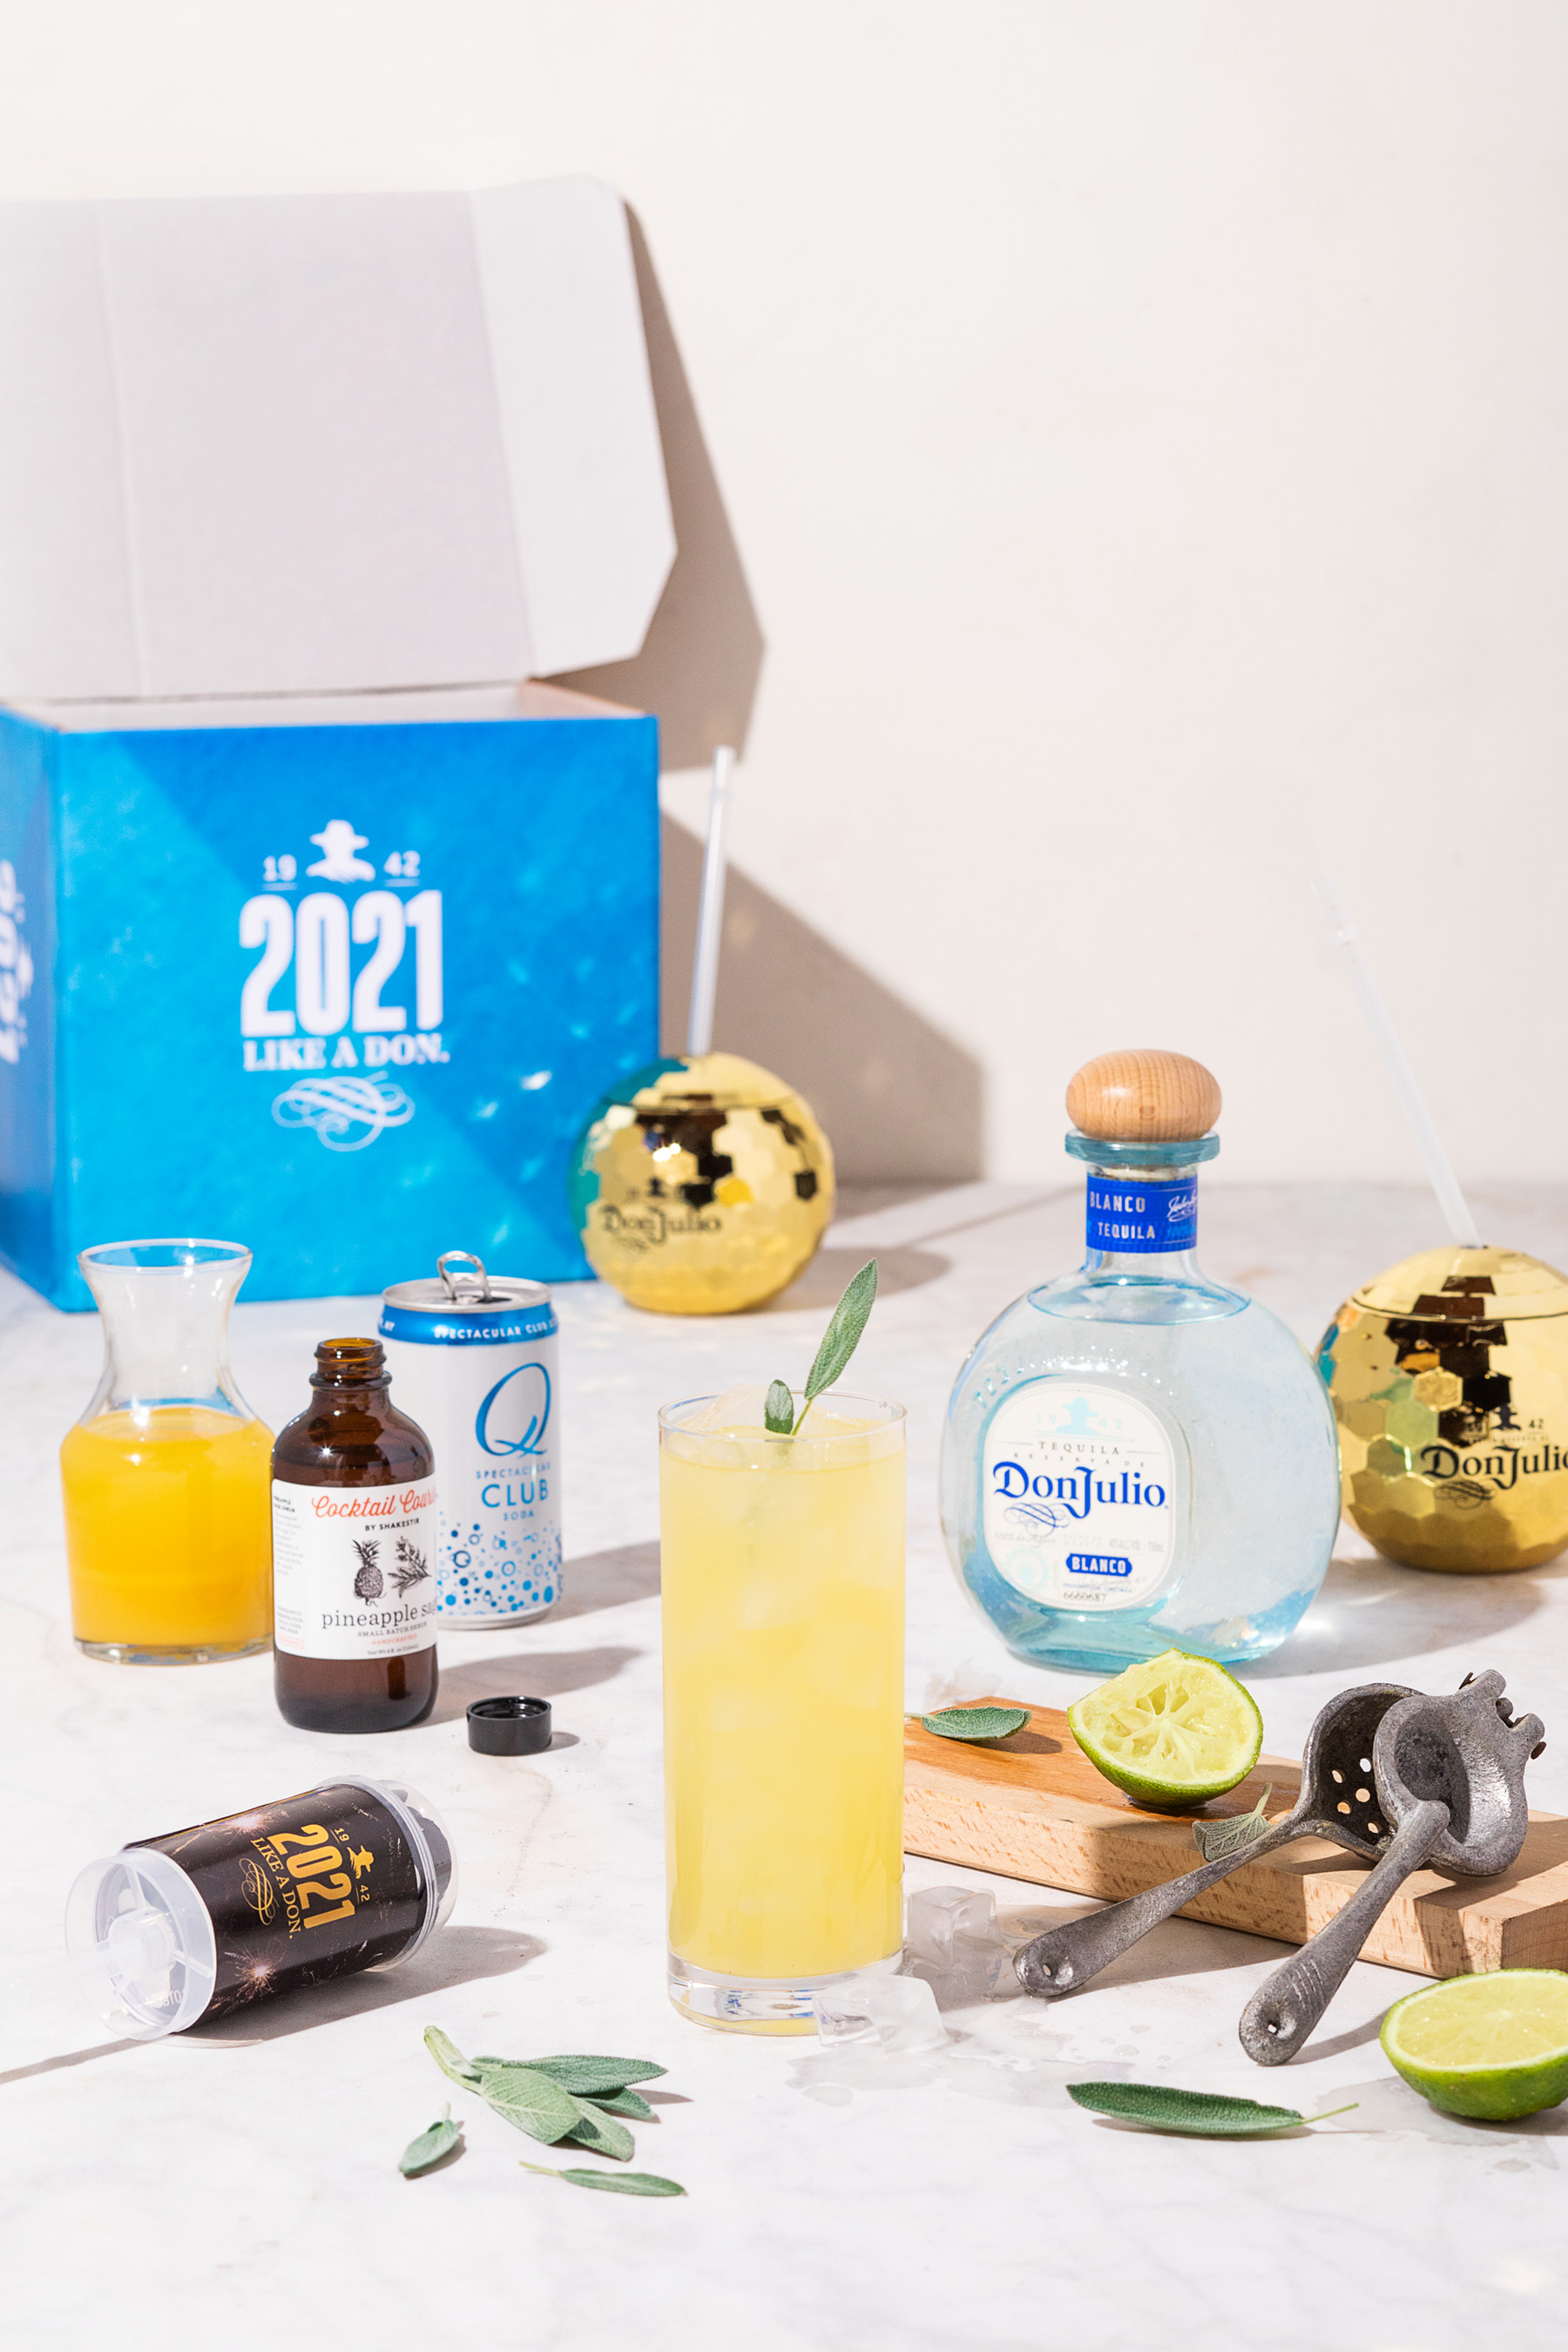 Celebrate New Year's Eve with the Tequila Don Julio NYE Curated Cocktail Kit available on Cocktail Courier to help elevate your cocktail game so that you can Ring in 2021 Like a Don.